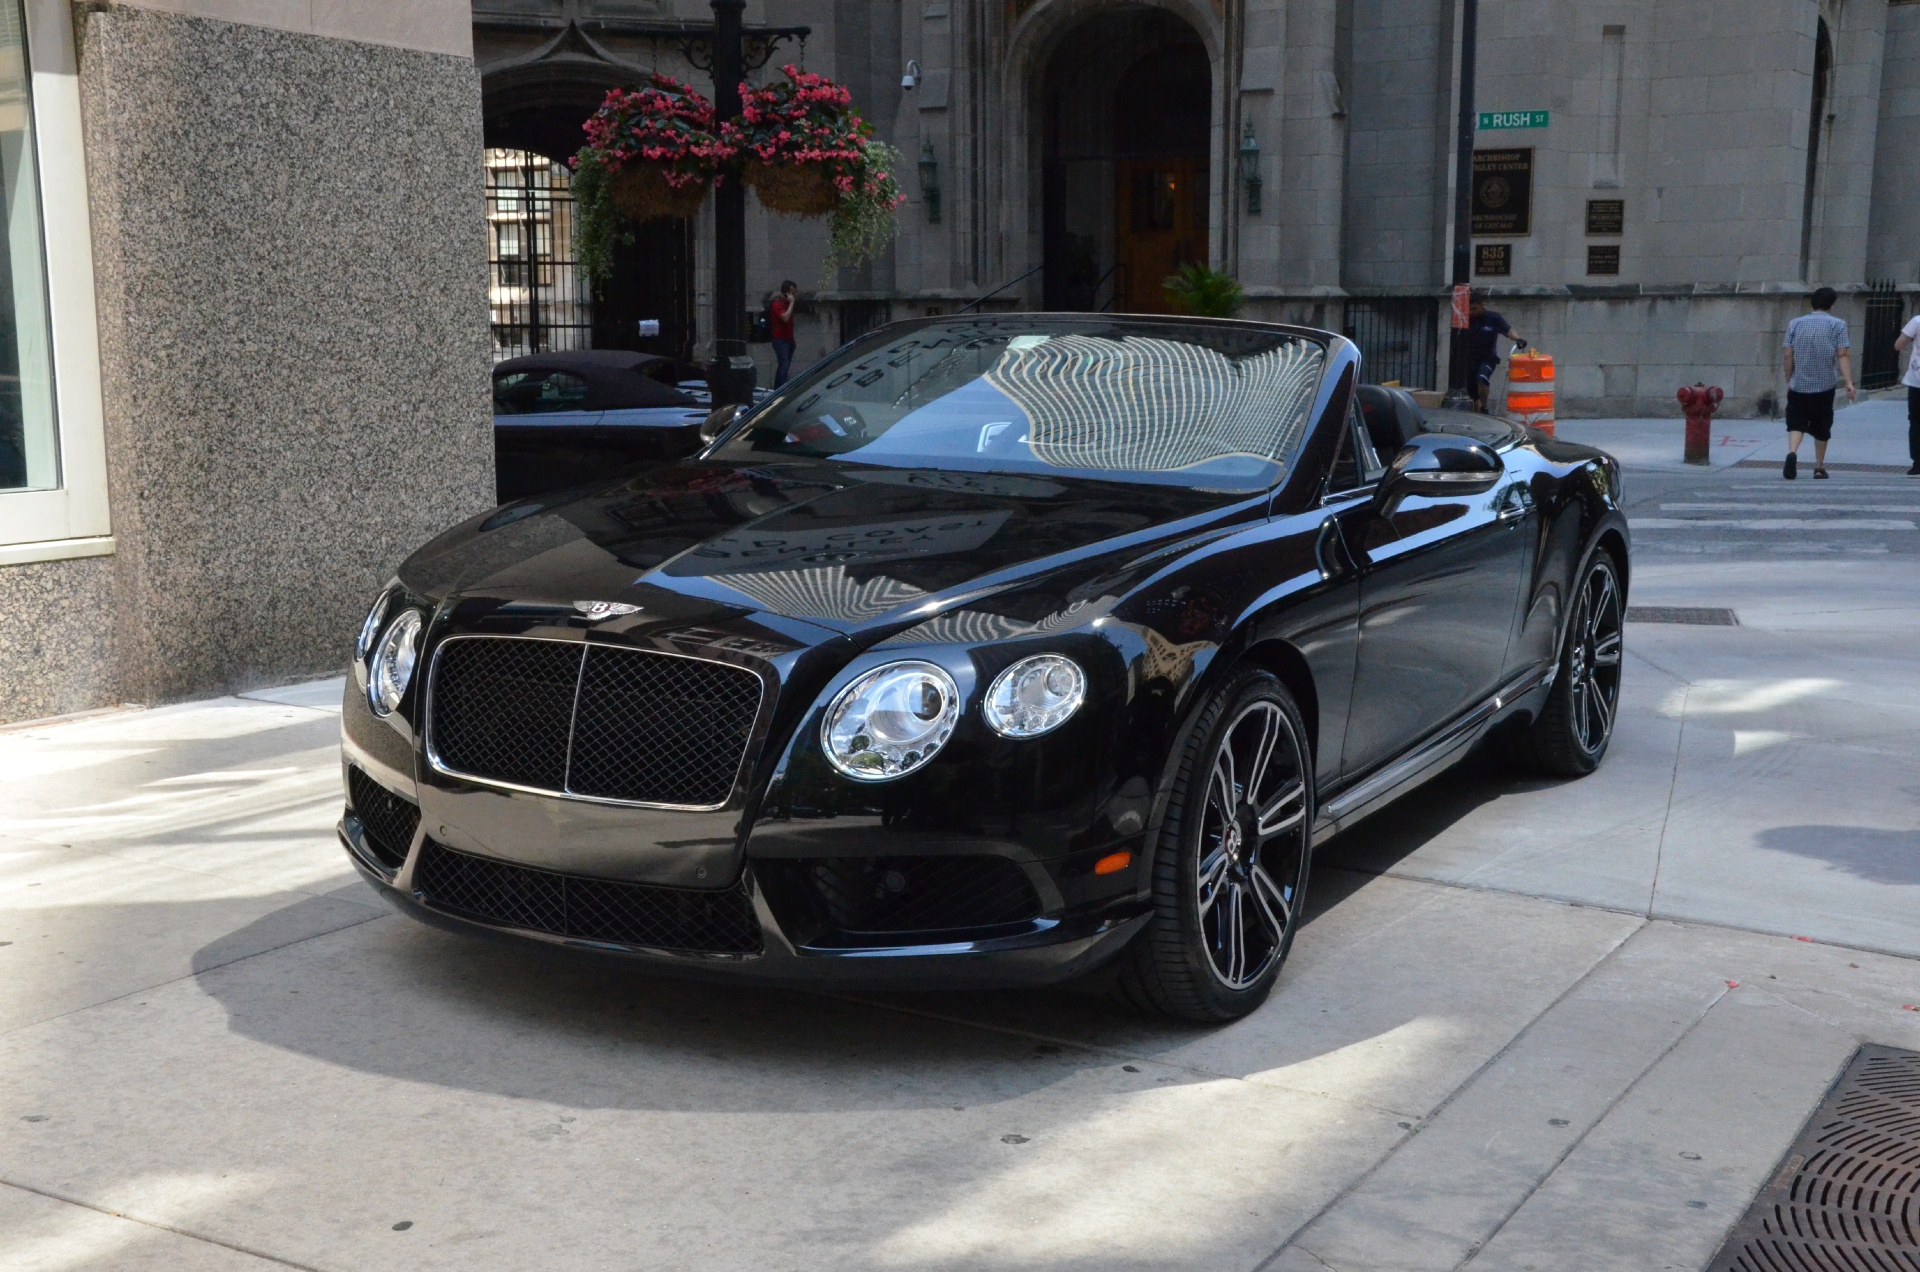 2013 bentley continental gtc v8 used bentley used for Gold coast bentley luxury motors